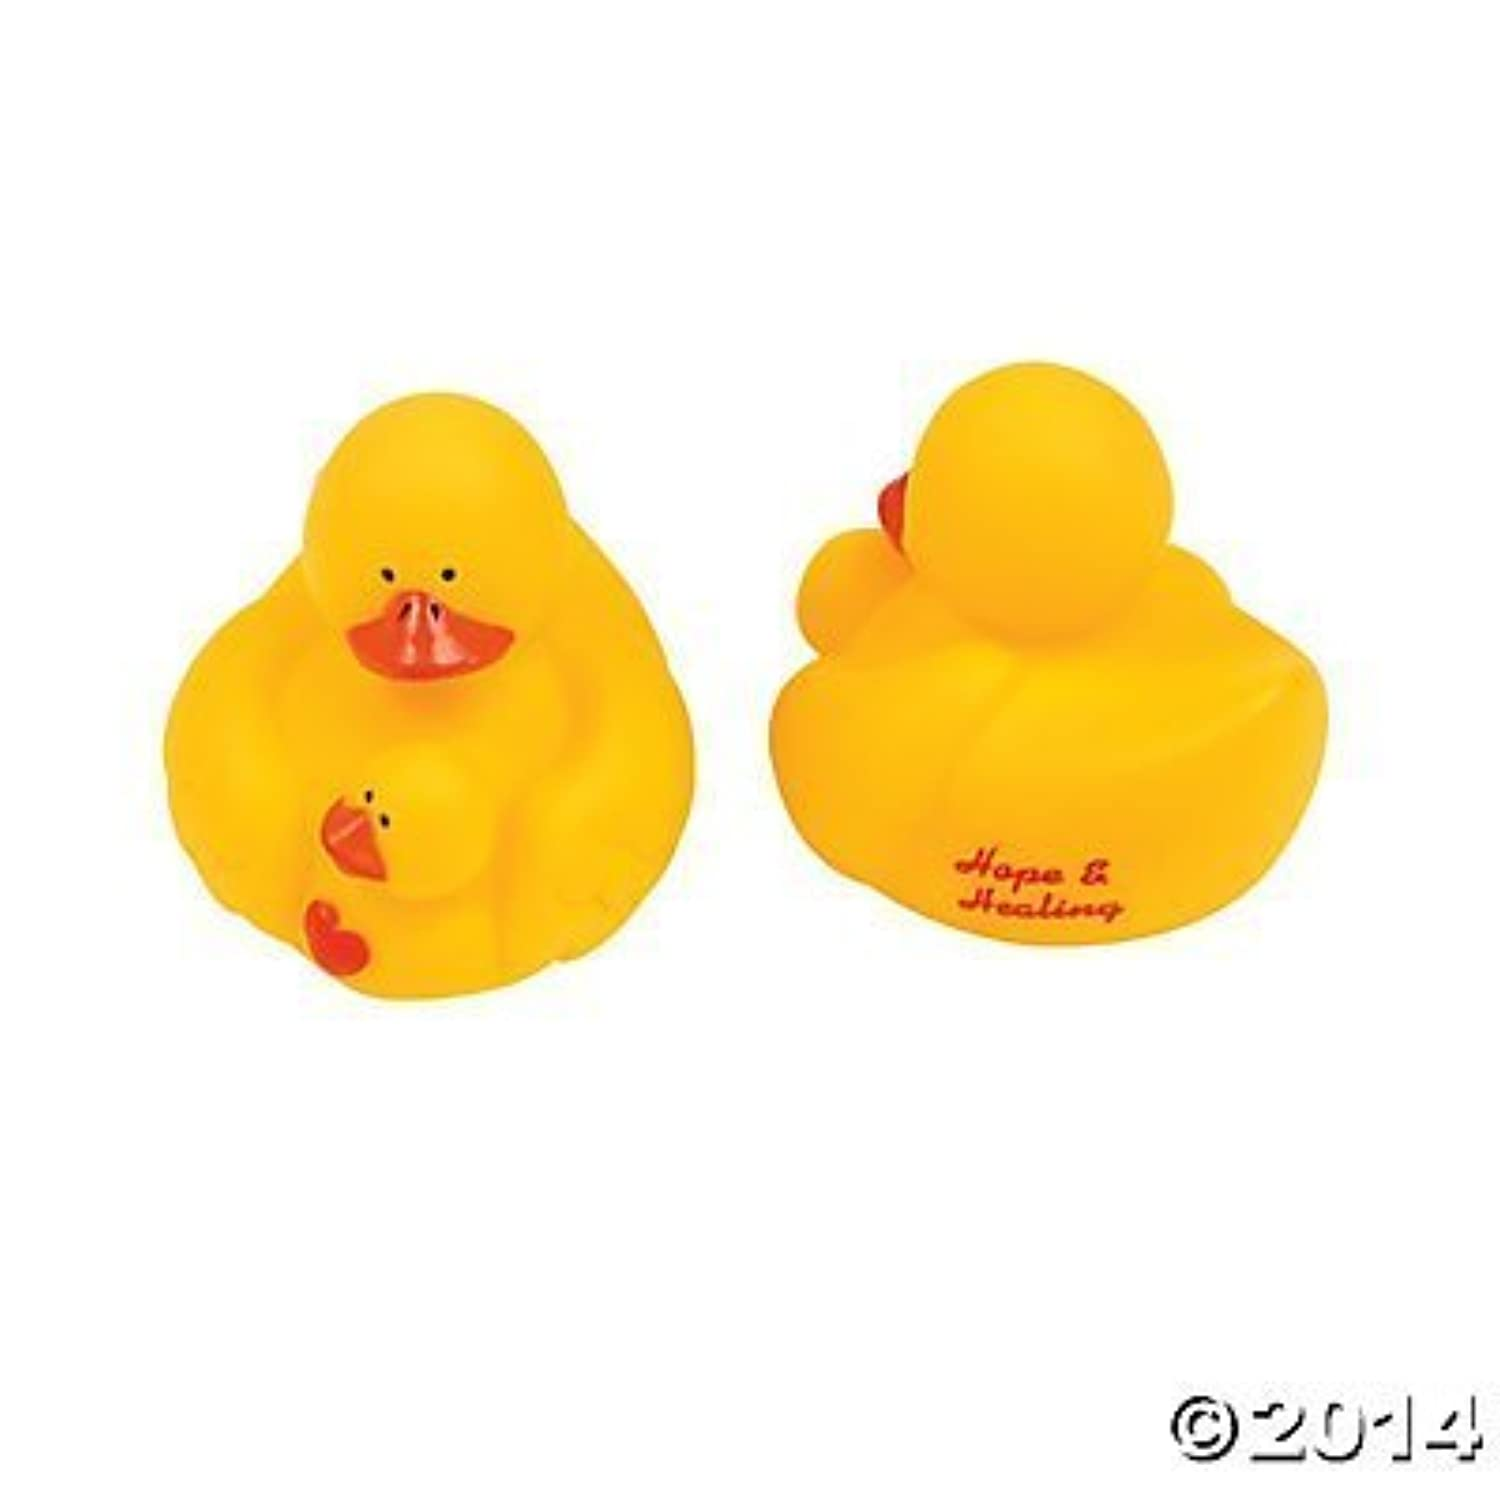 Hope and Healing Rubber Ducks - 12 pcs by Rubber Ducky [並行輸入品]